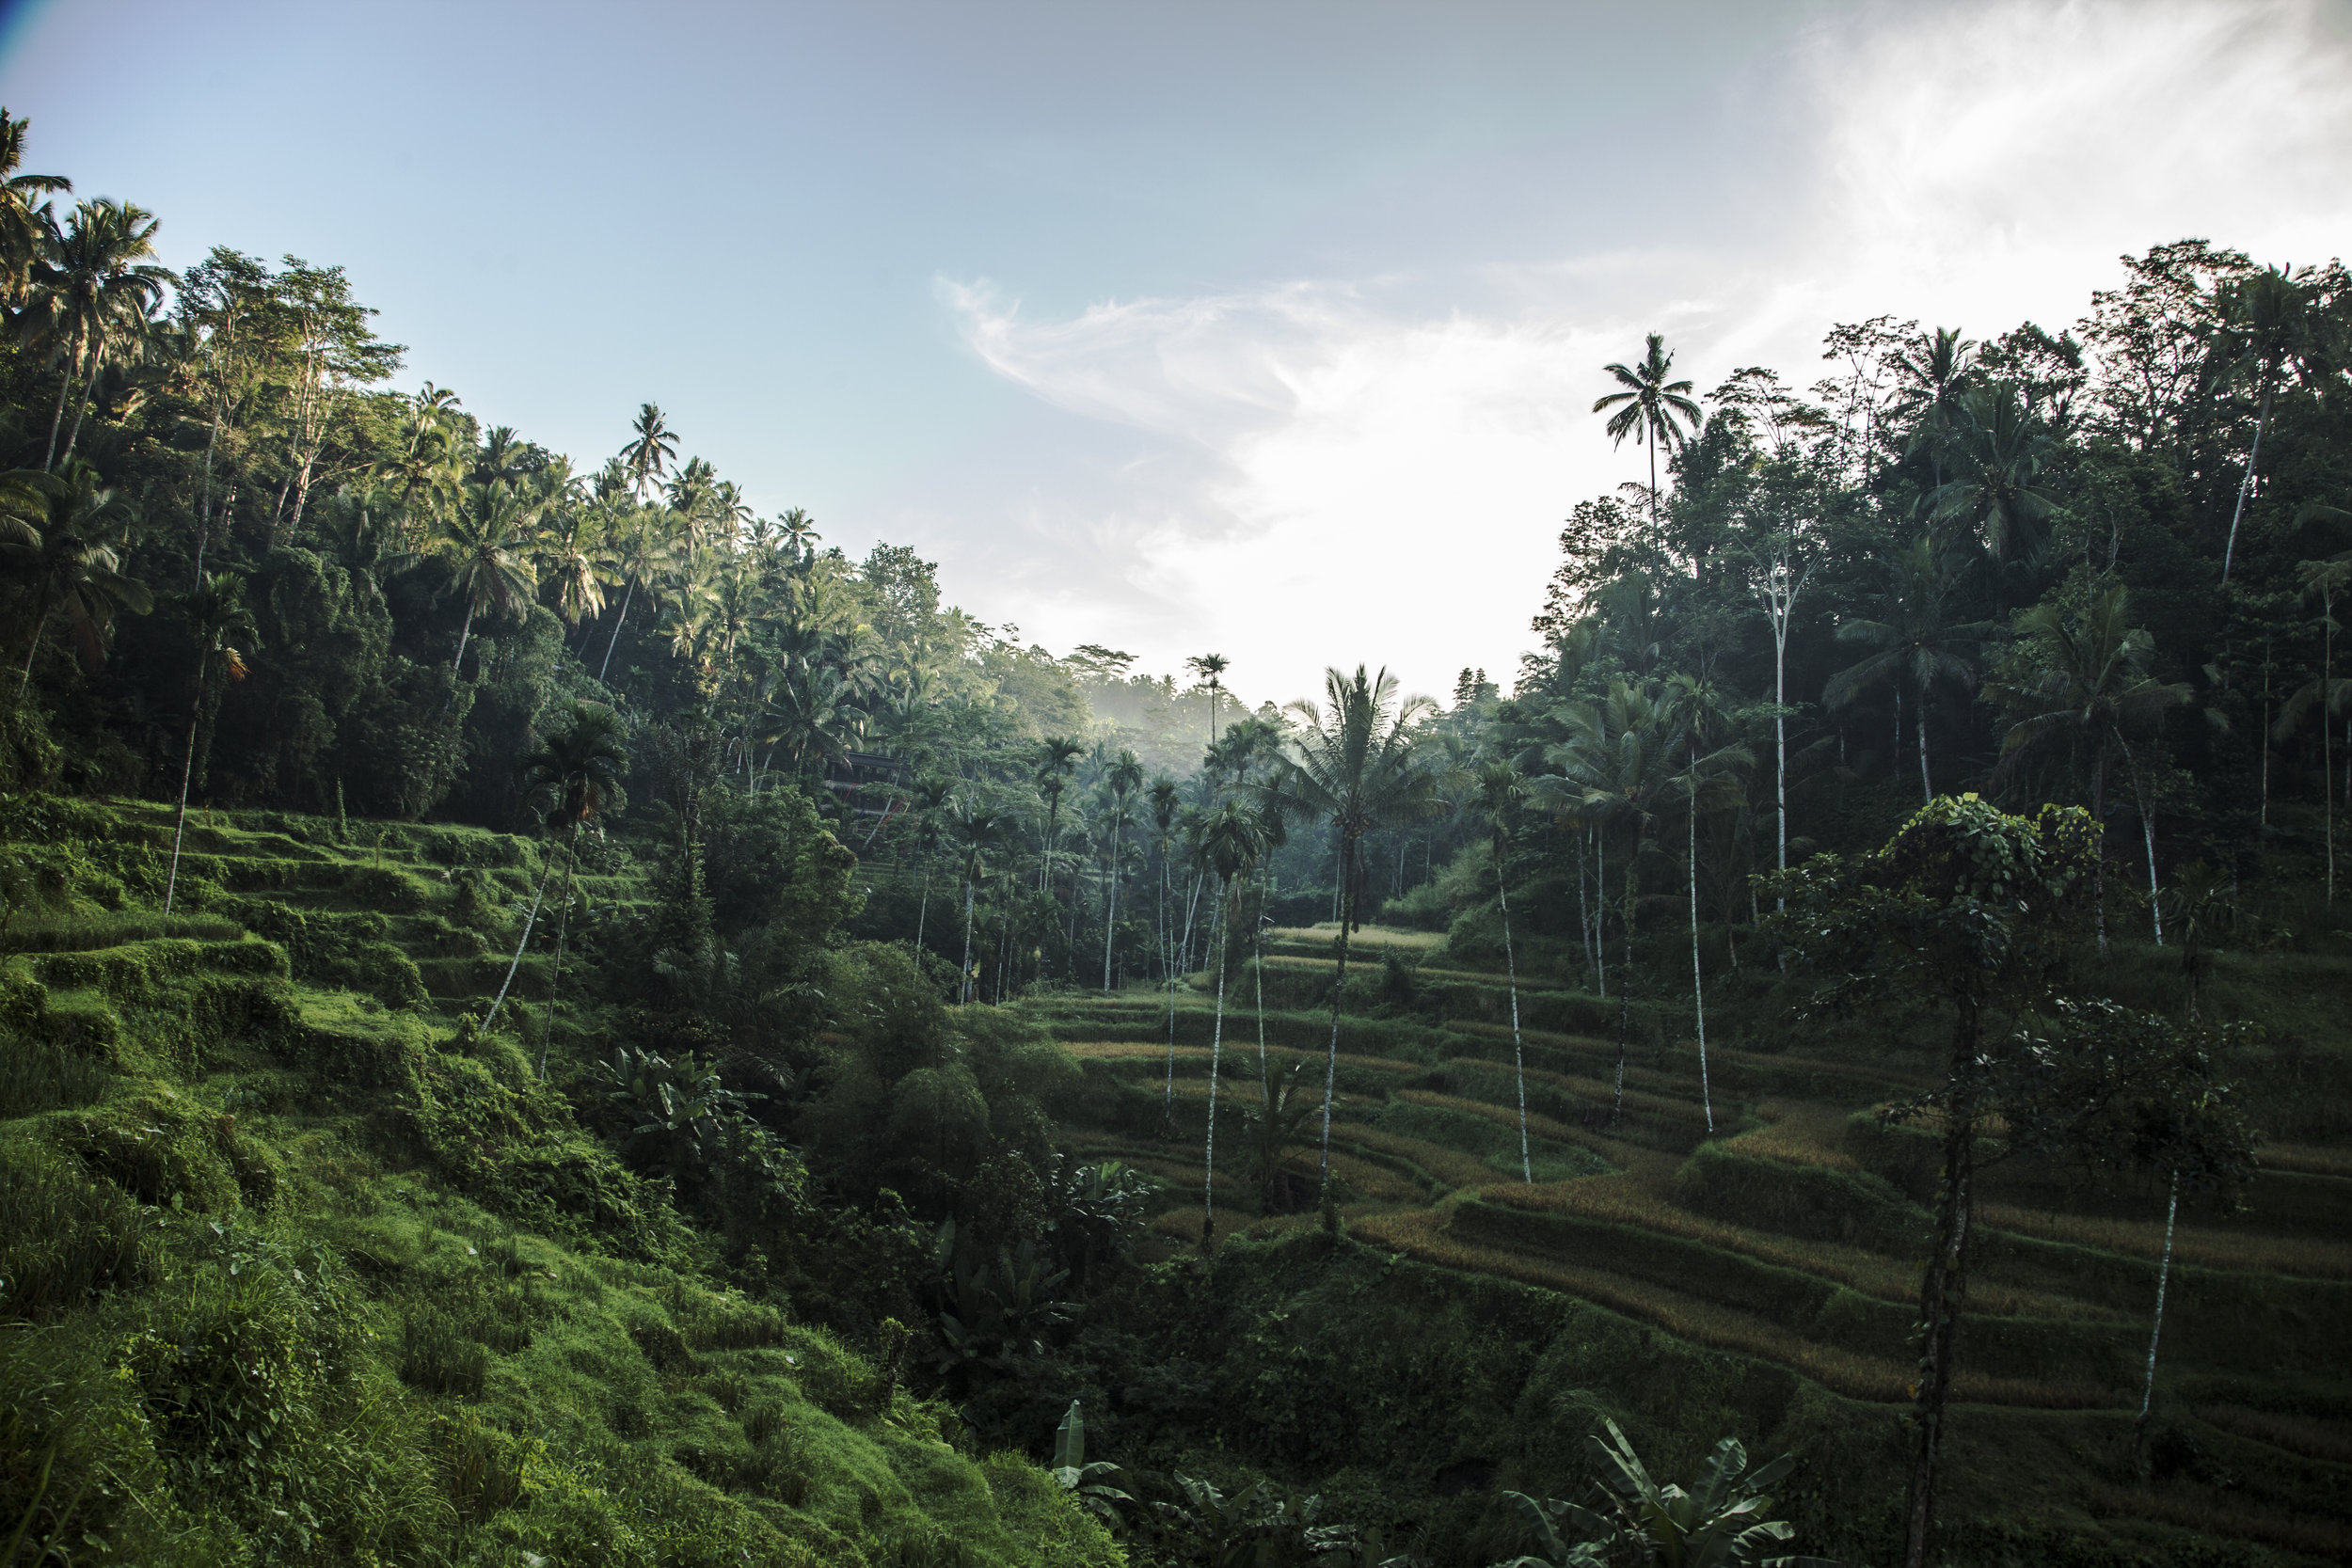 rizière Tegalalang ubud indonesie ricefield